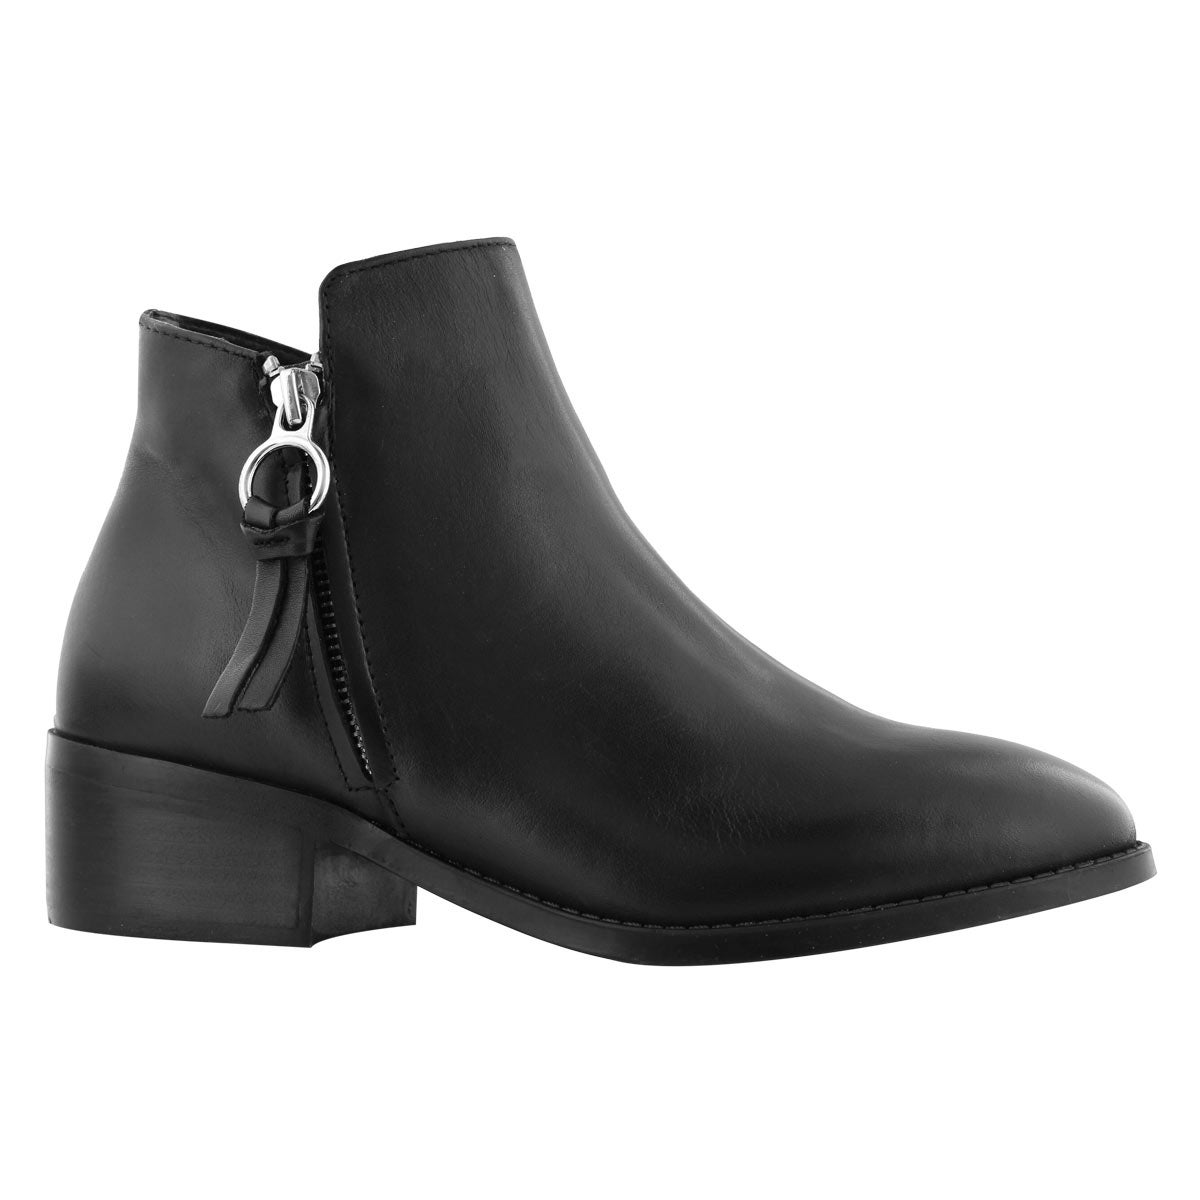 Lds Dacey black side zip ankle bootie